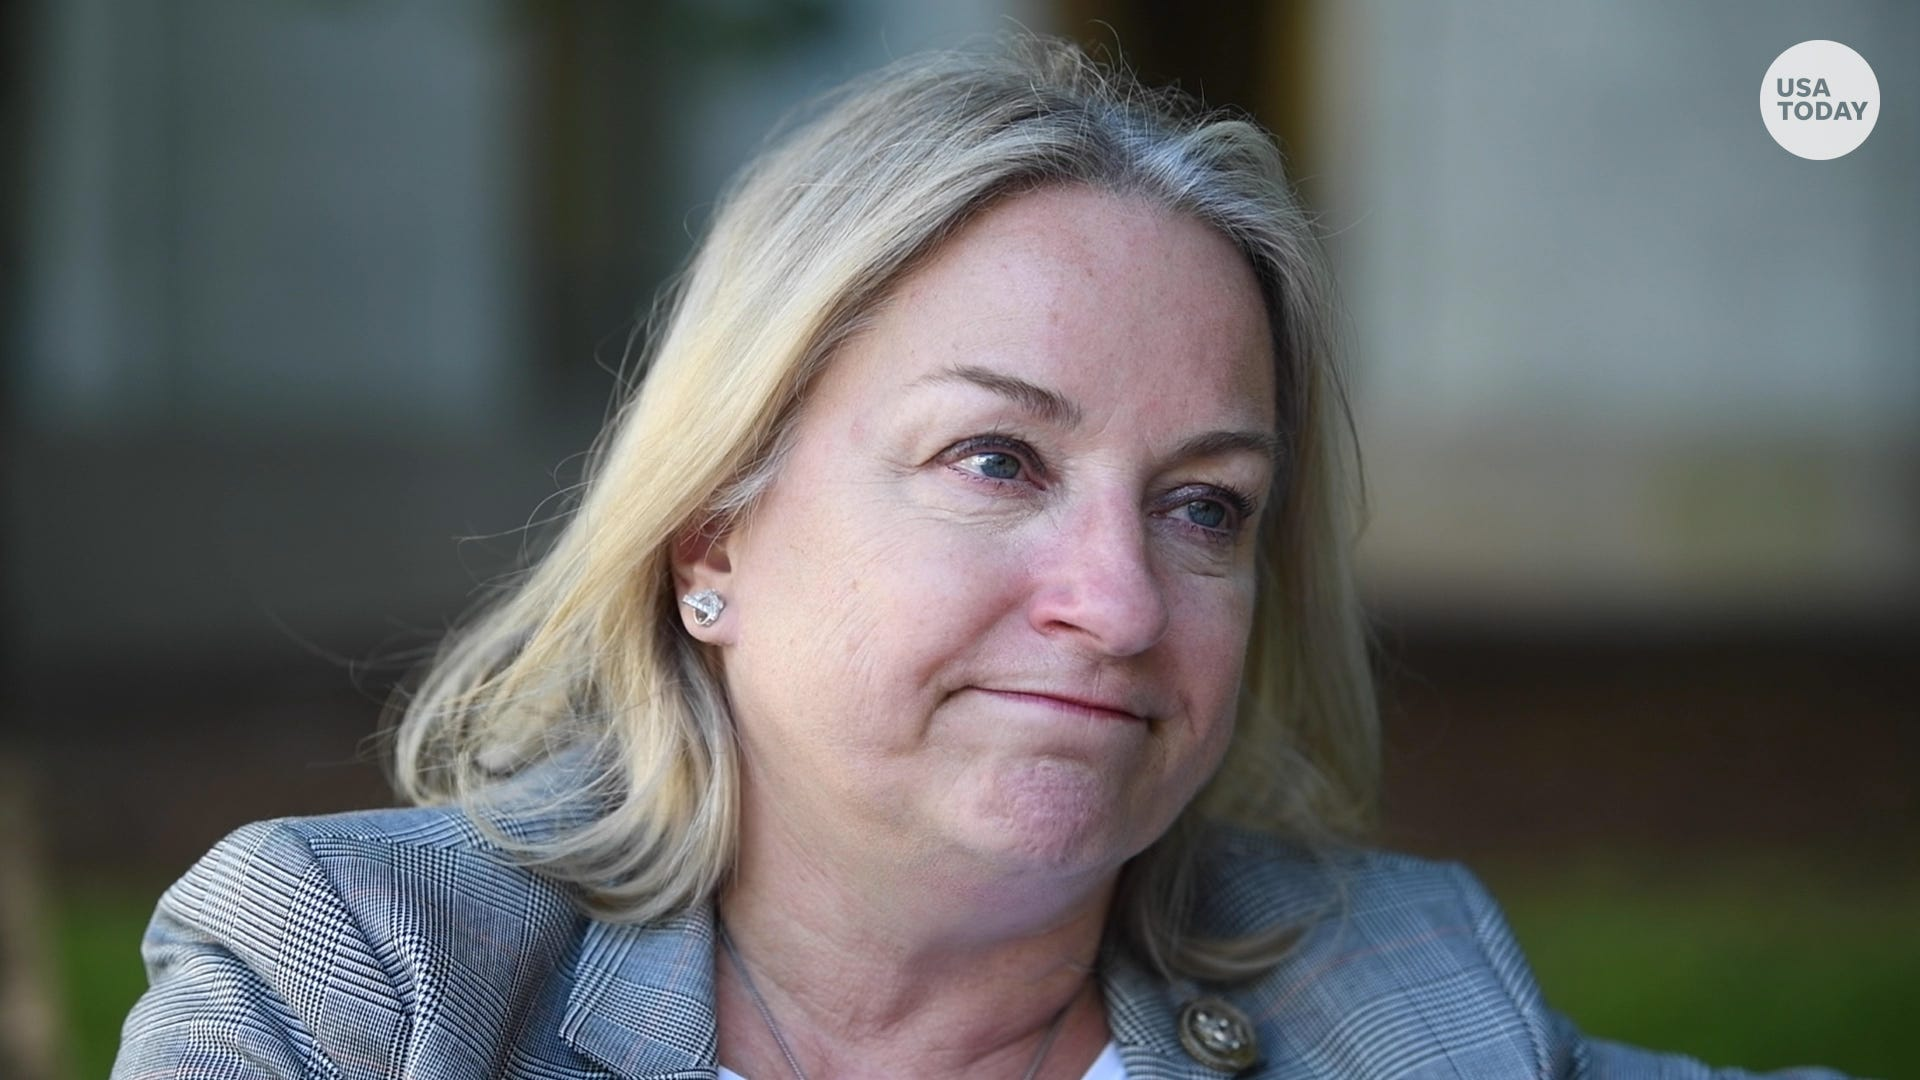 Suicide changed her life forever; tearful Rep. Susan Wild calls it a